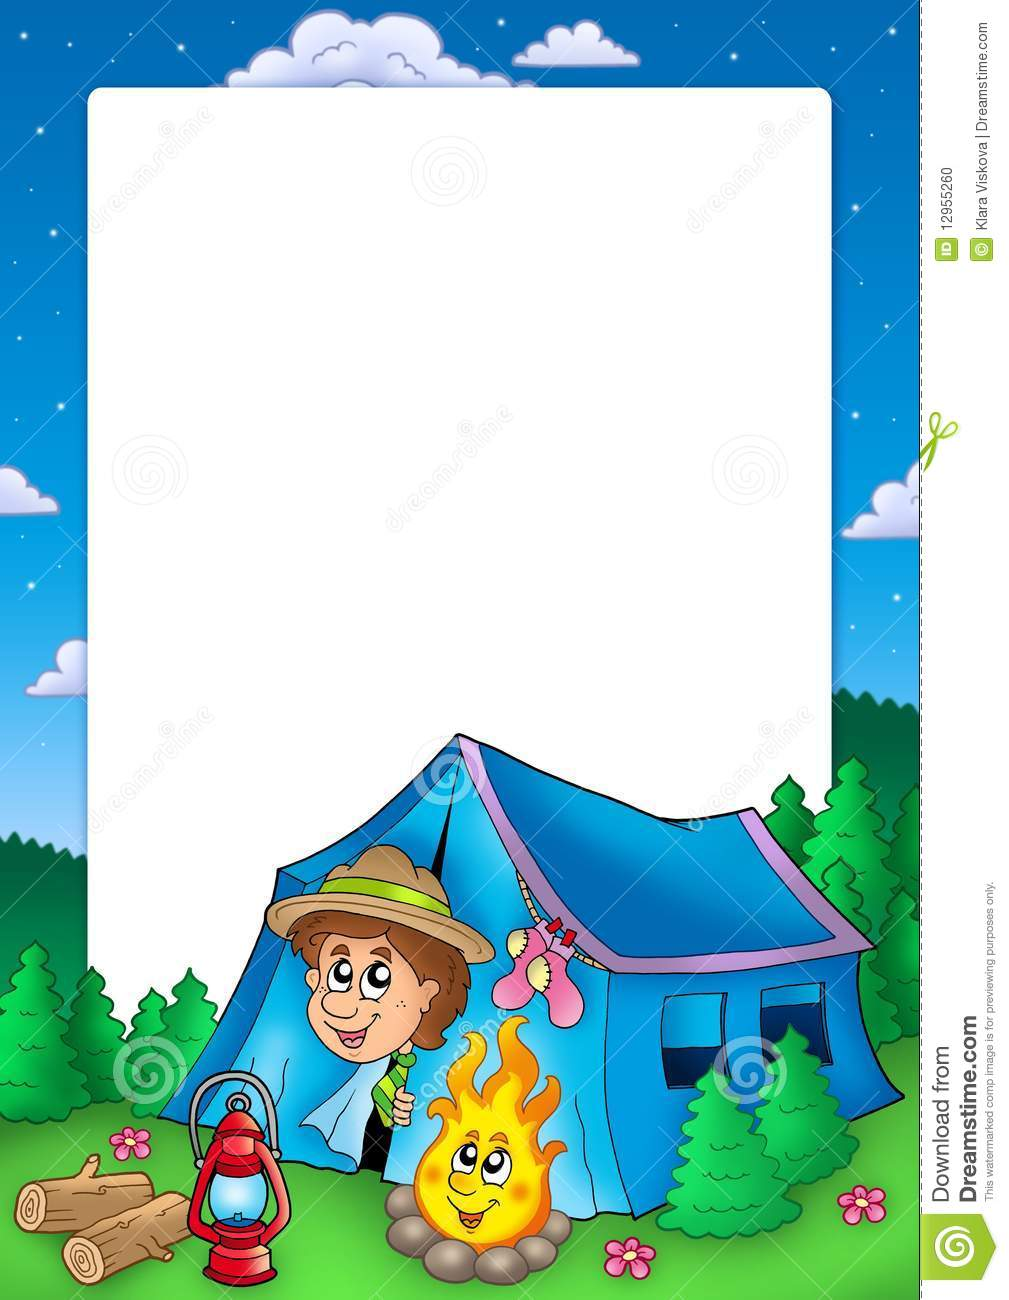 Frame With Camping Scout Stock Photo Image 12955260